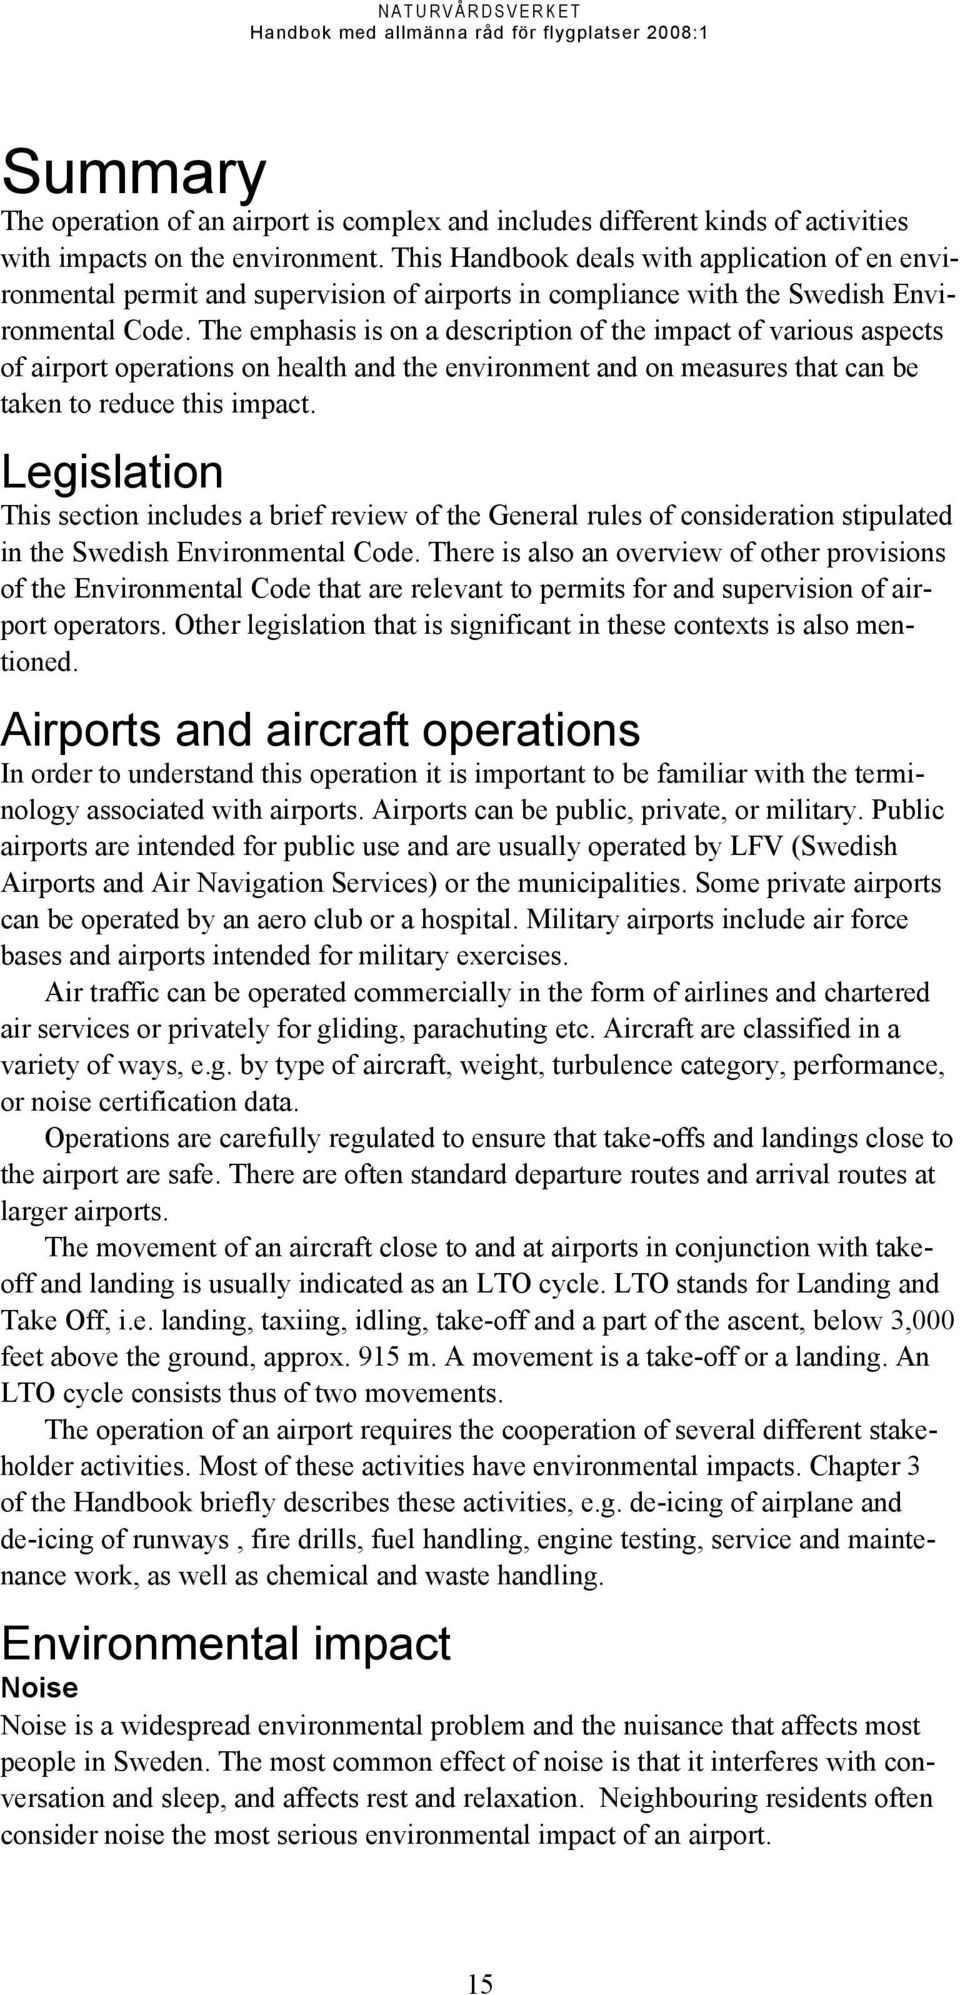 The emphasis is on a description of the impact of various aspects of airport operations on health and the environment and on measures that can be taken to reduce this impact.